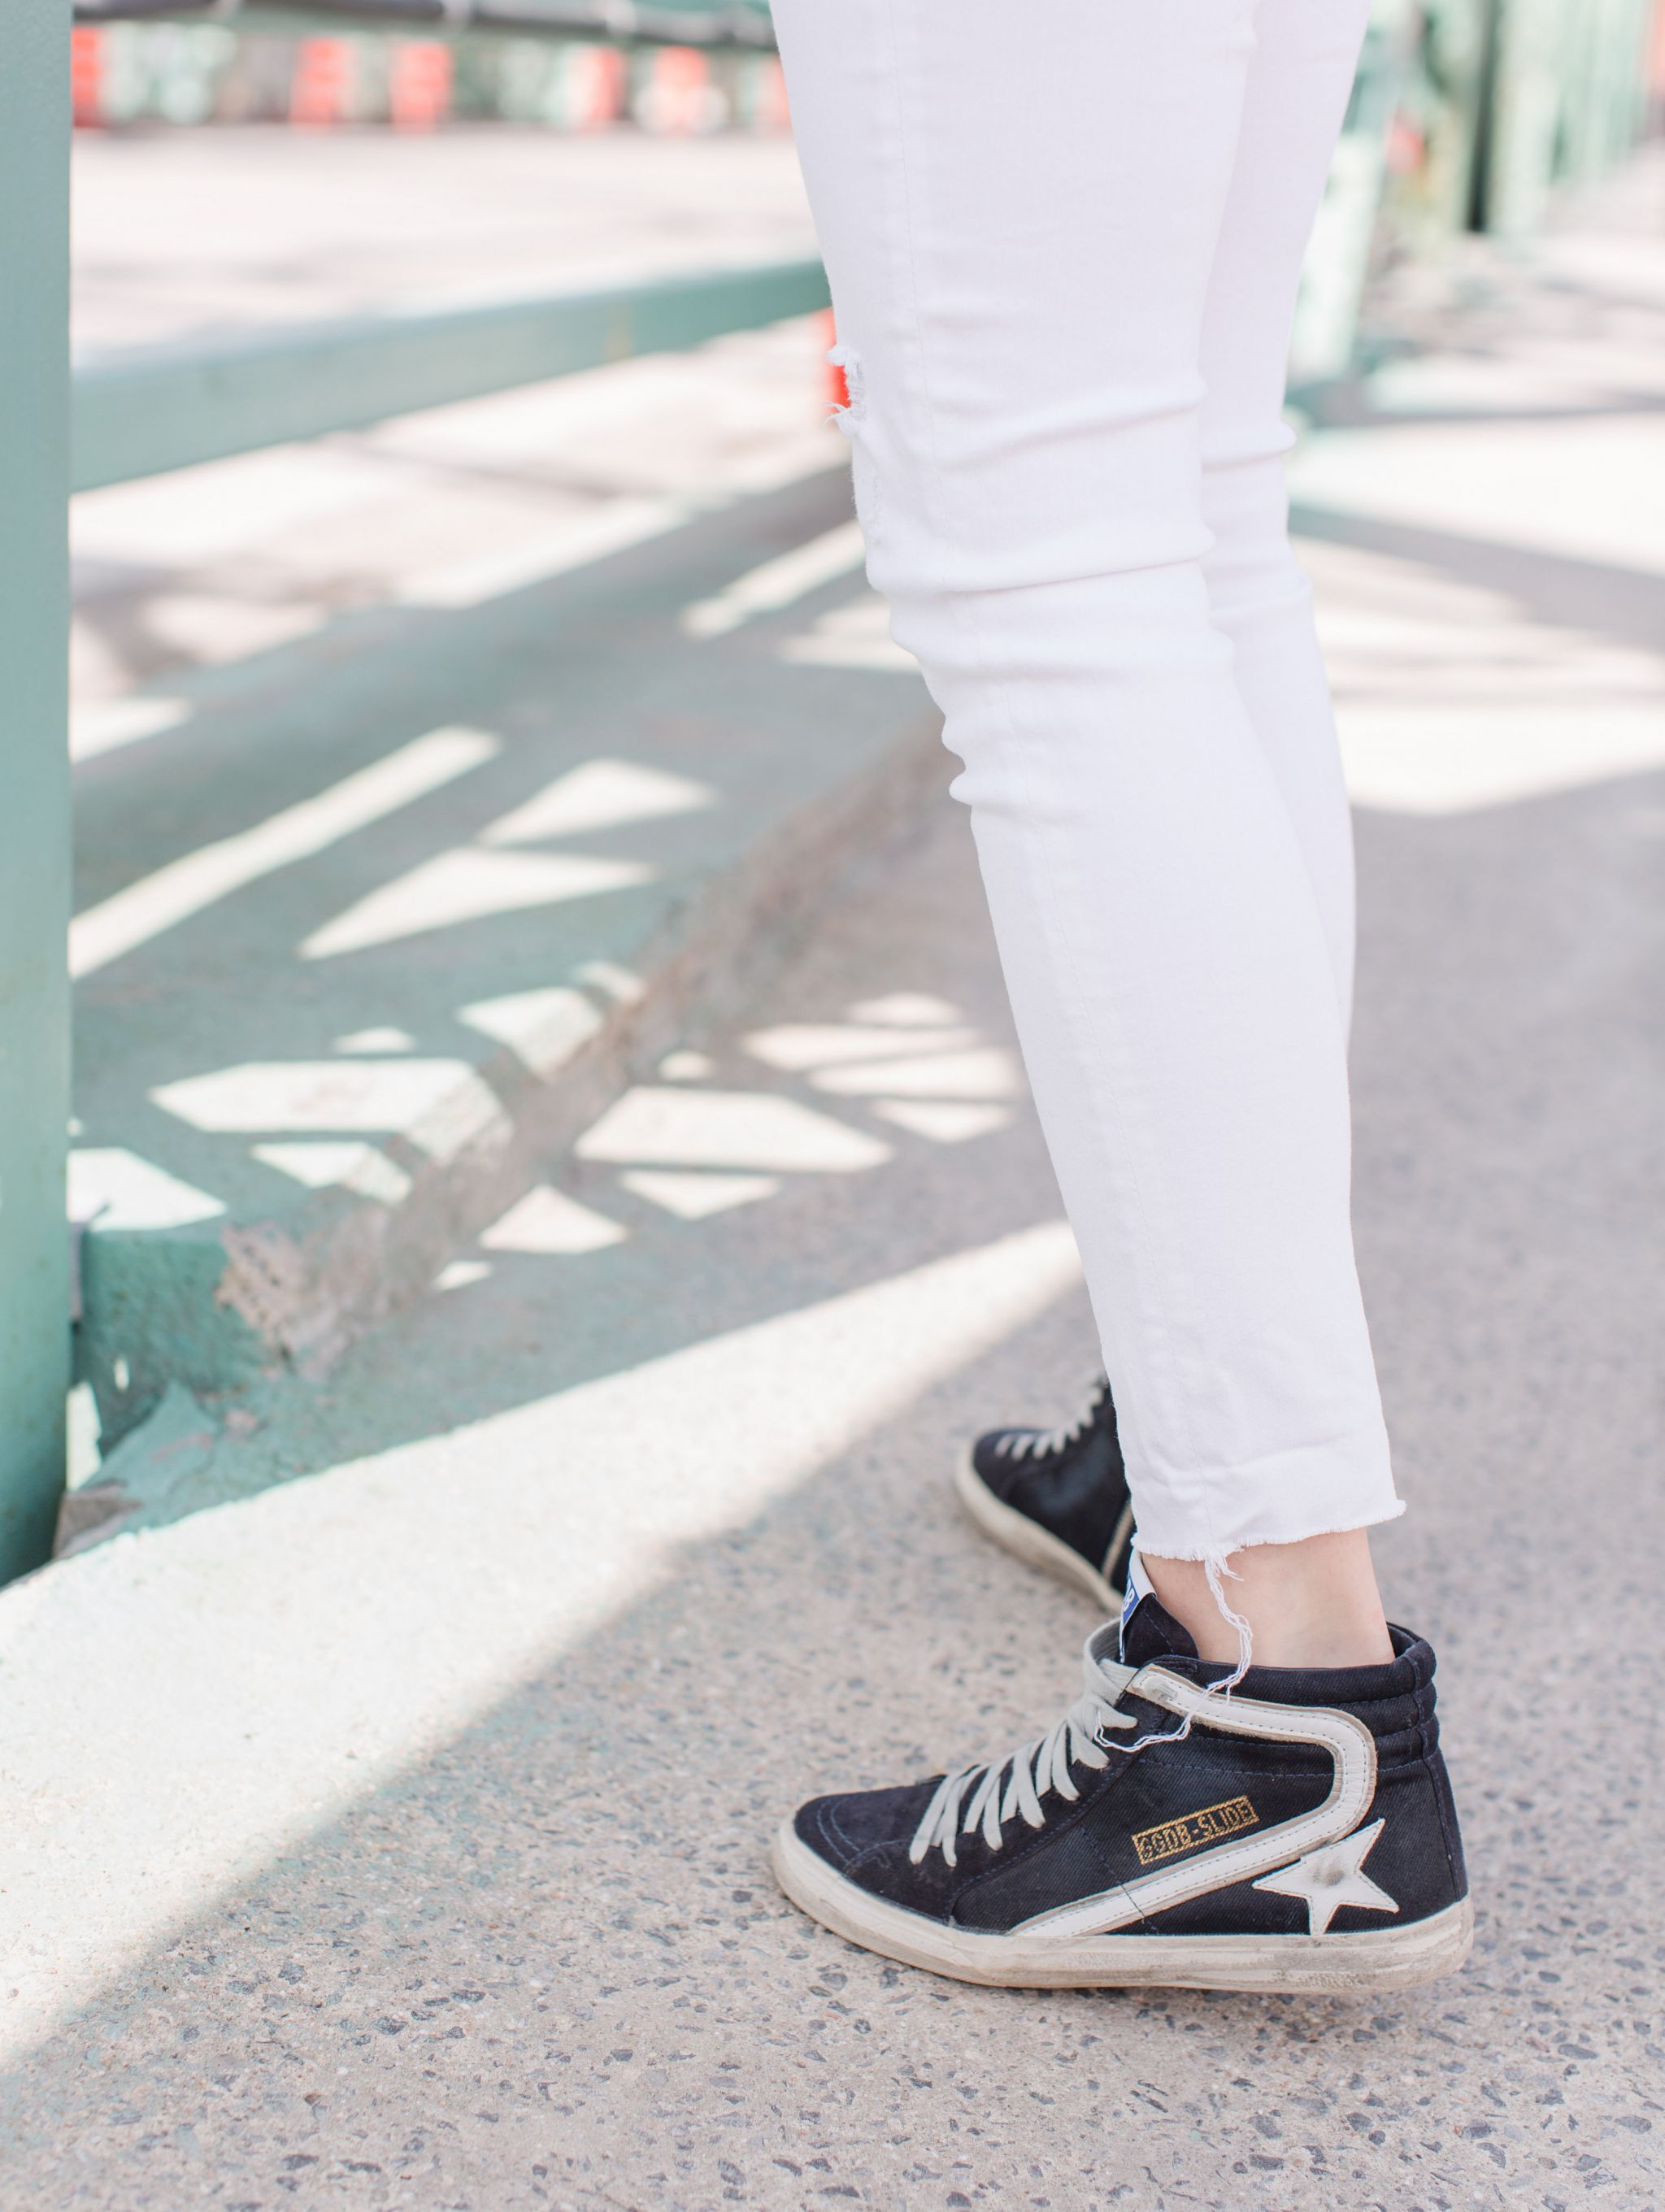 1 person, sneaker shot, golden goose shoes on fashion blogger